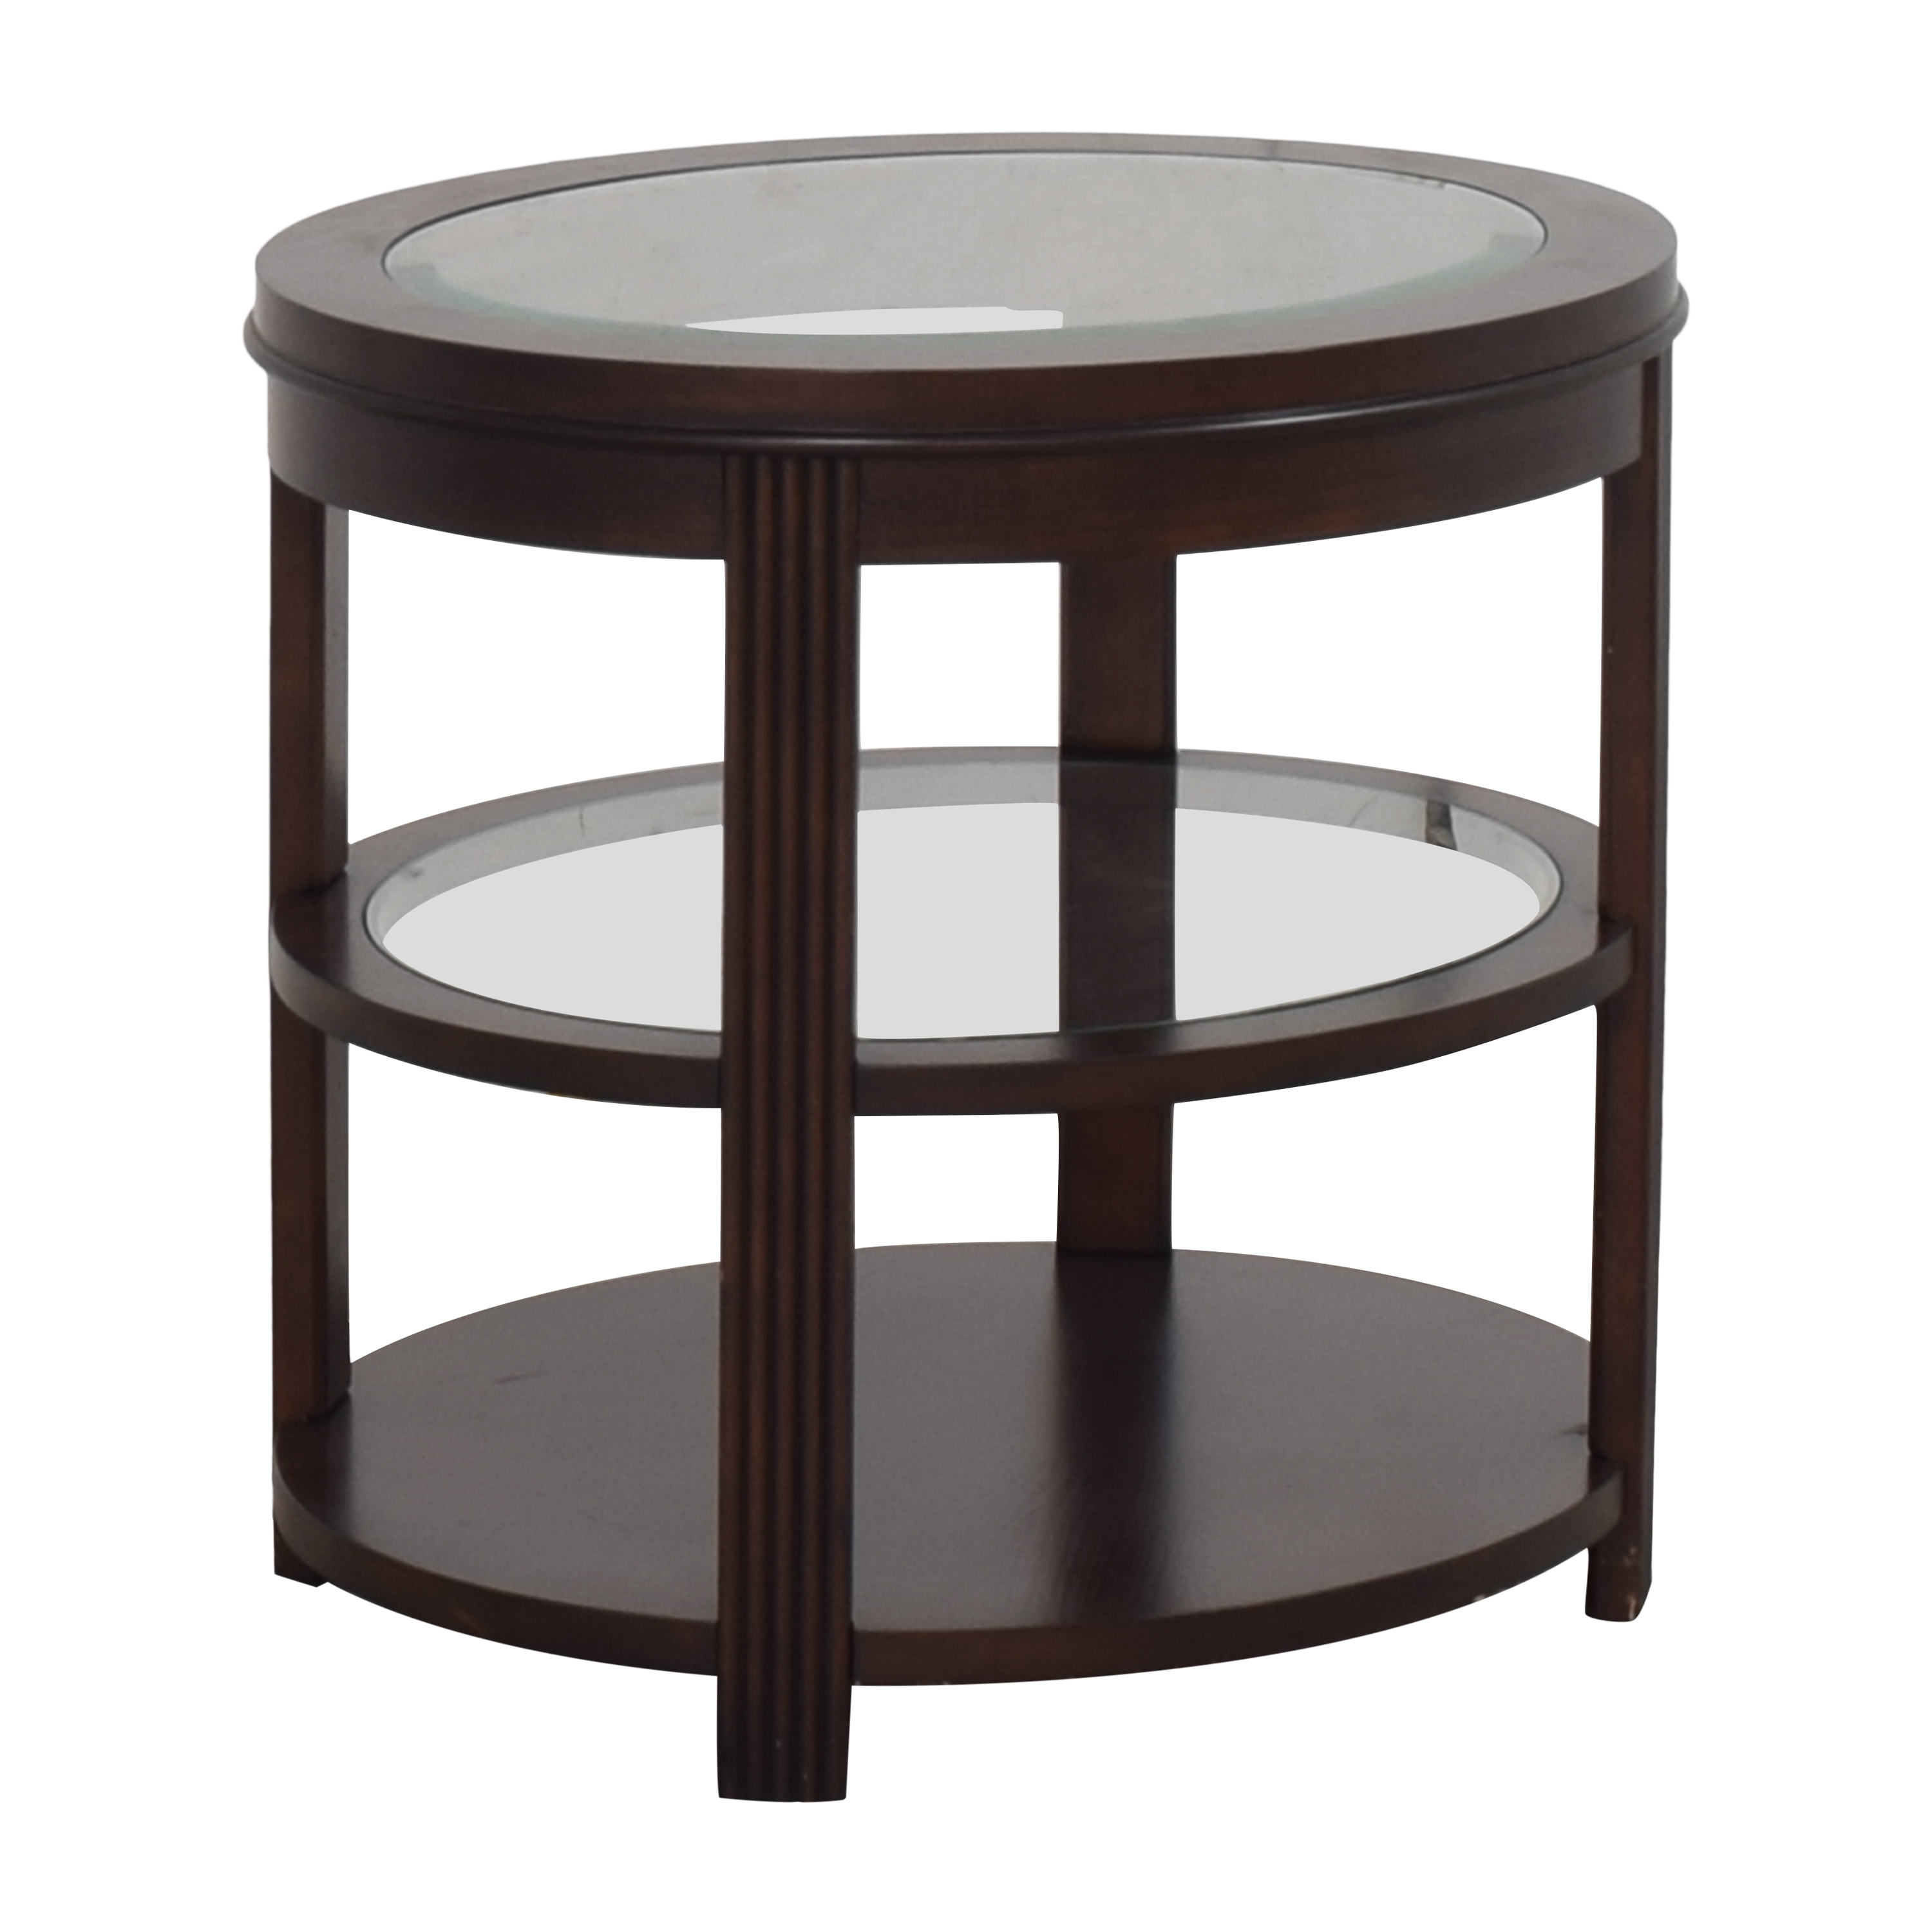 Three Tier Oval End Table for sale